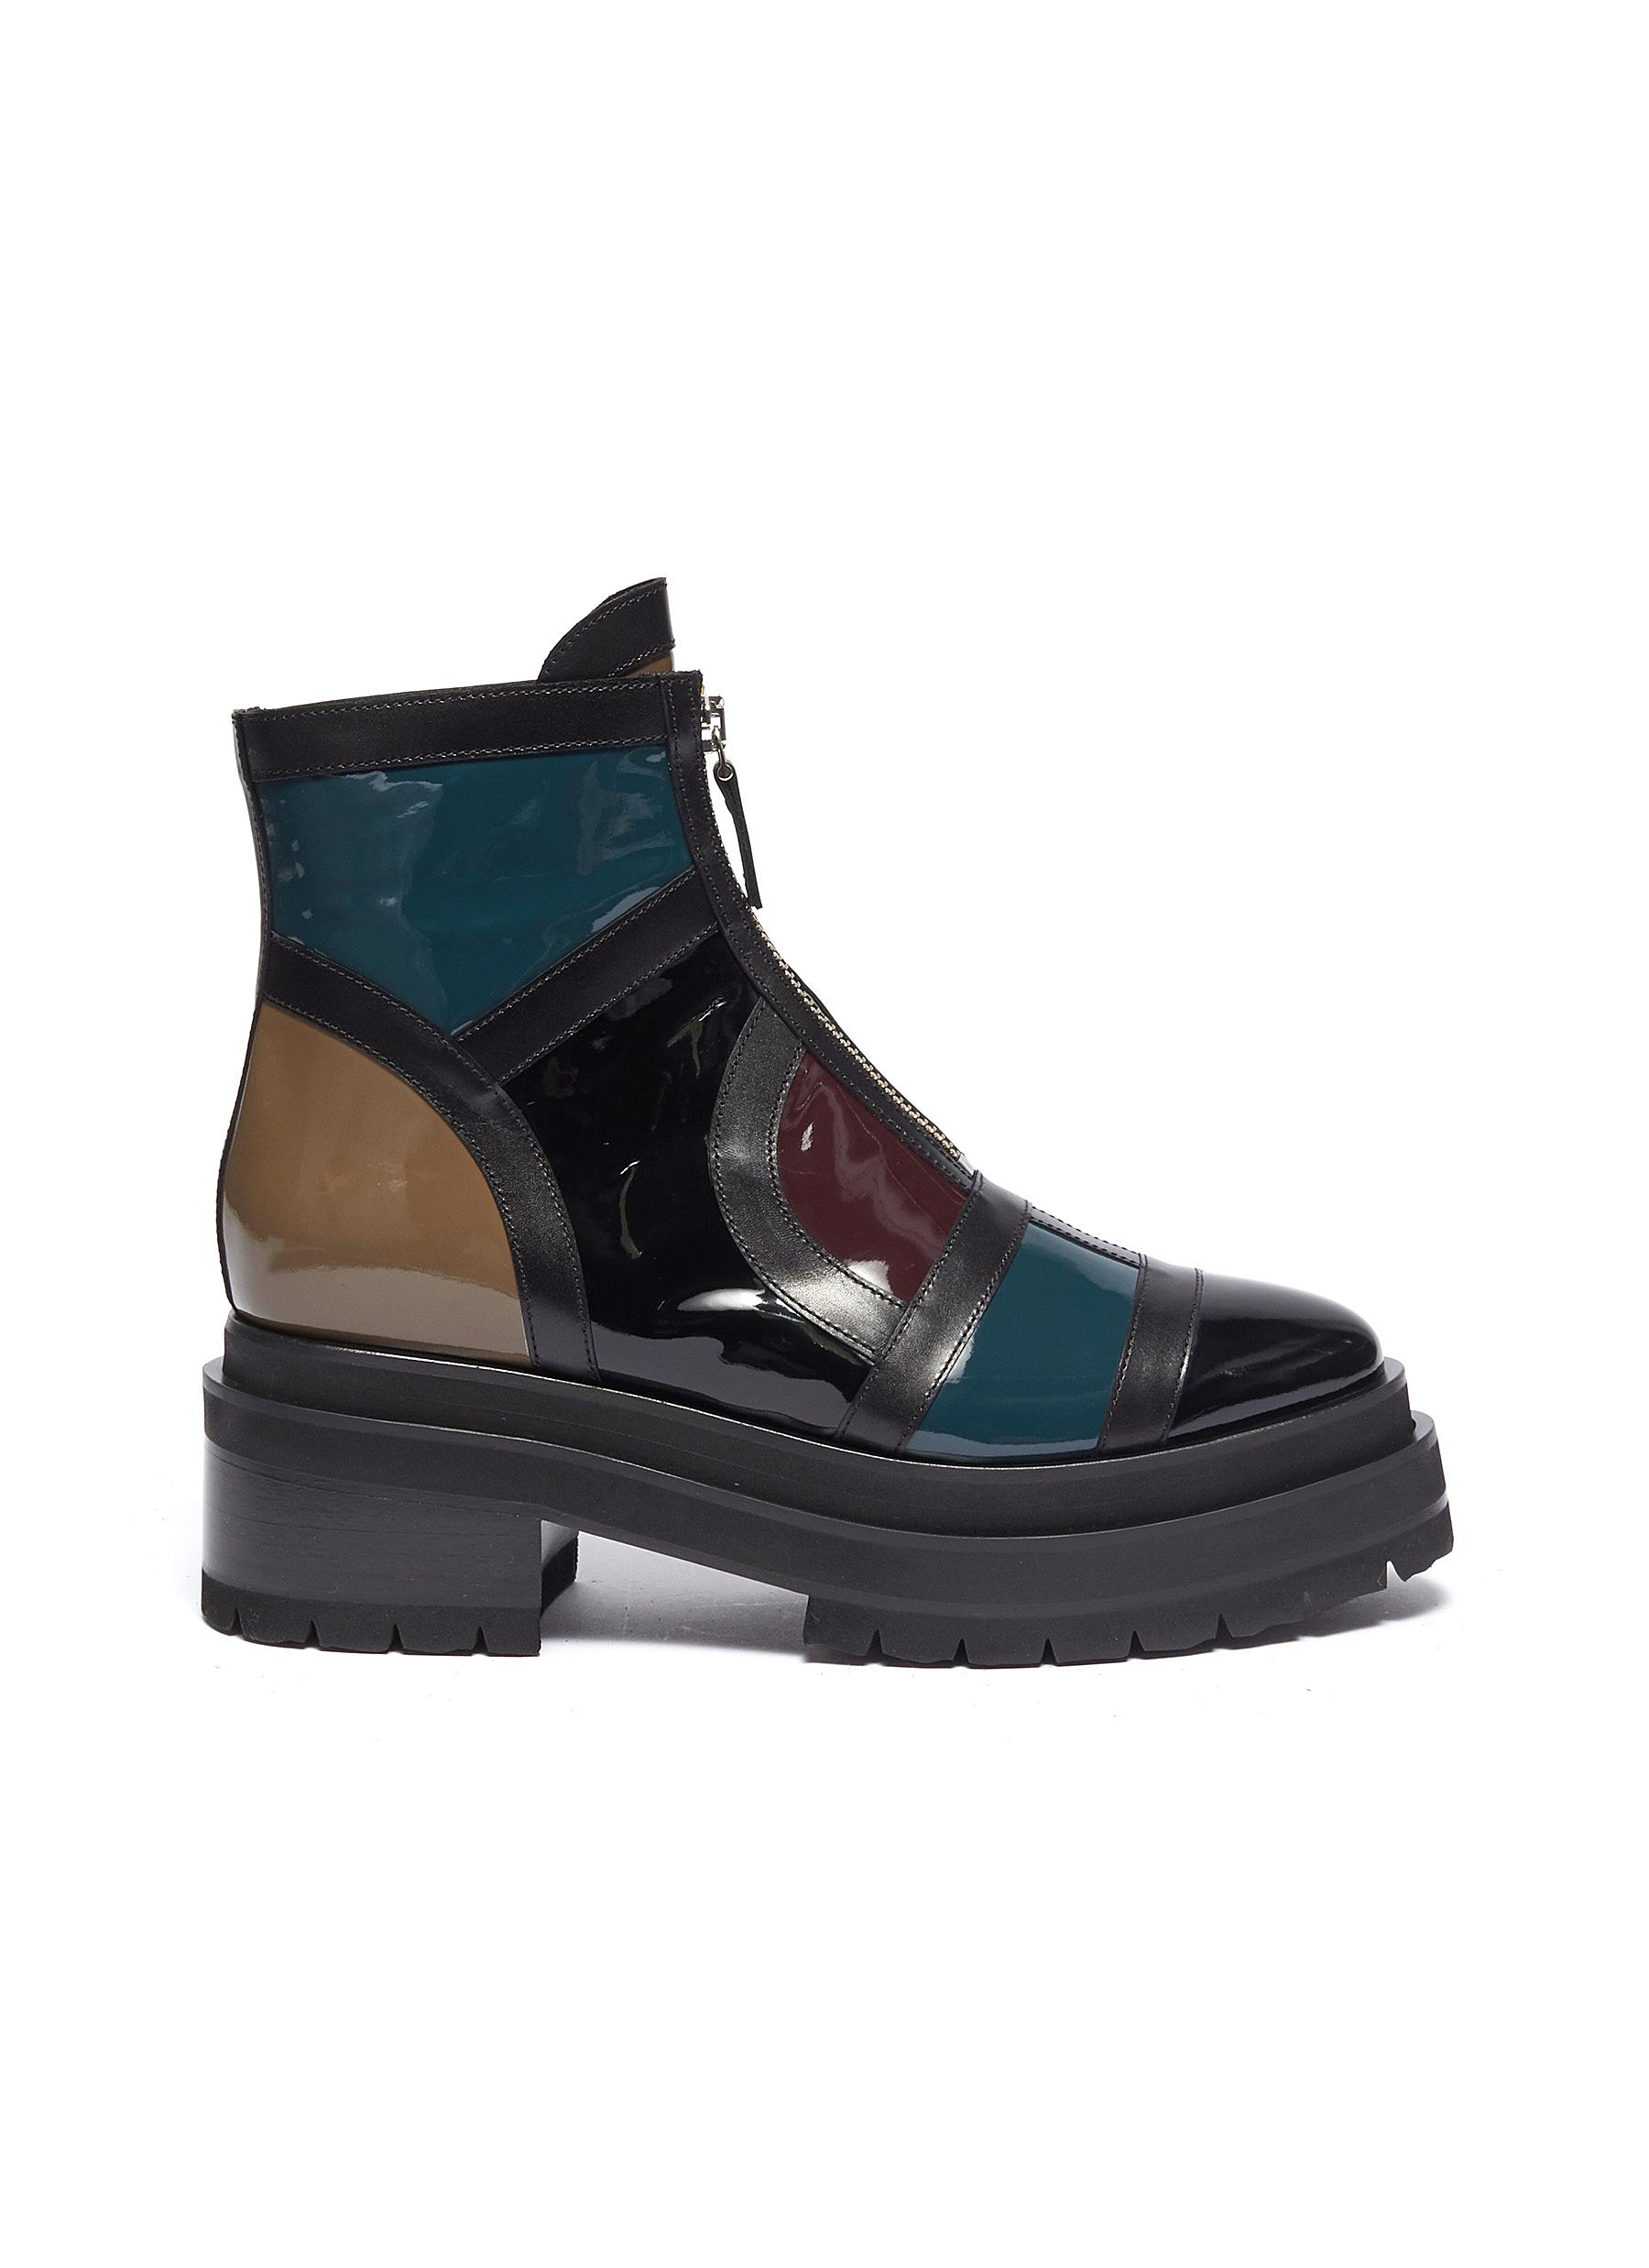 Frame patent leather patchwork combat boots by Pierre Hardy